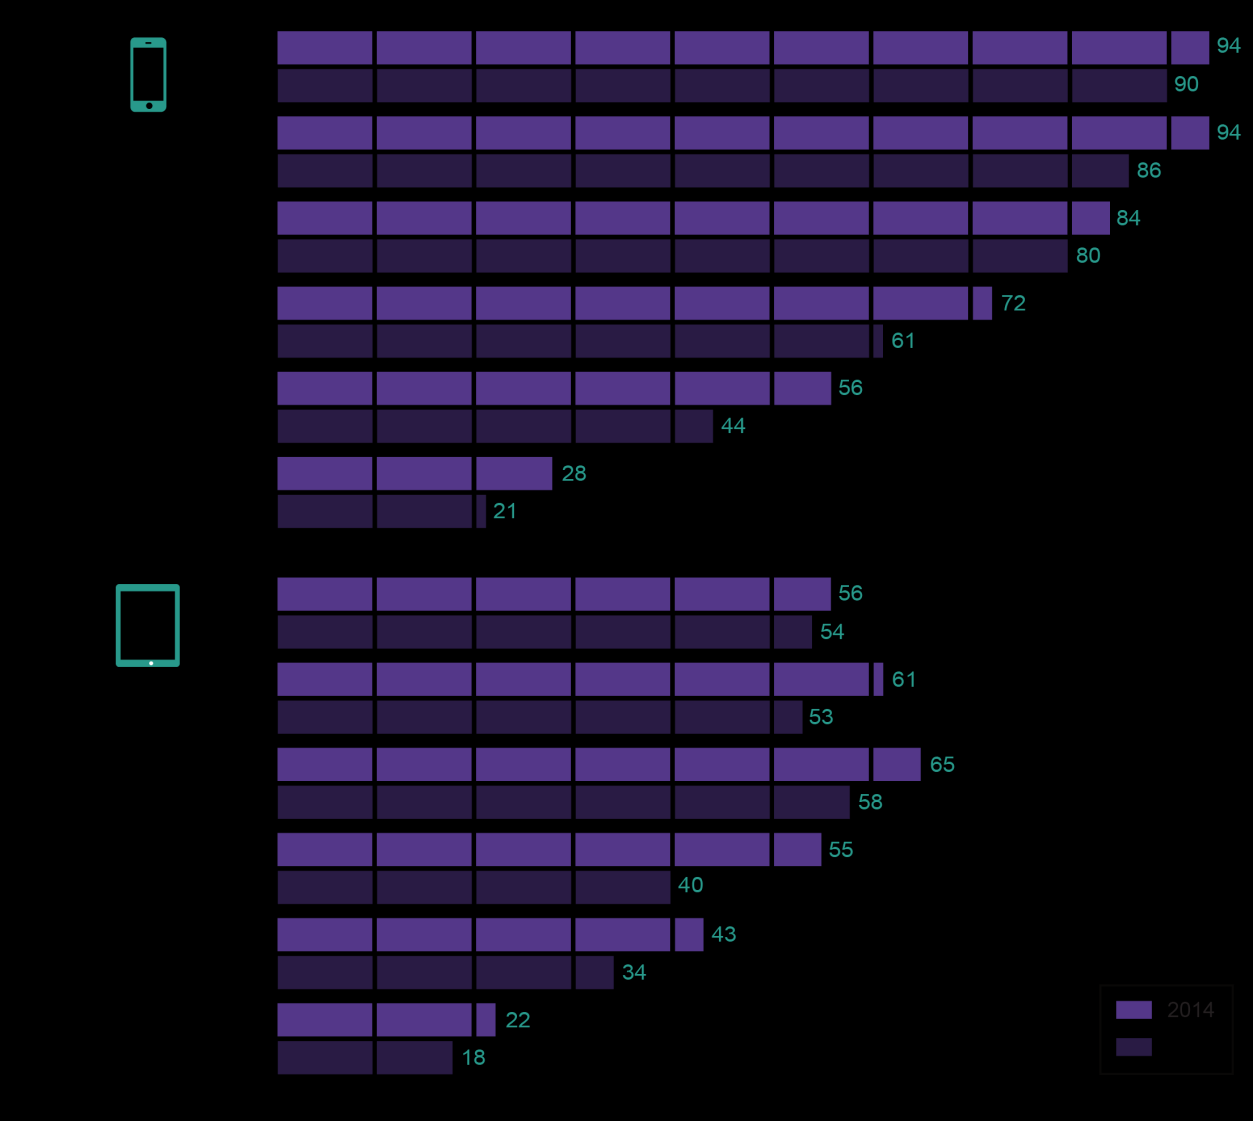 Figure 10 Internet access devices, by age, six months to May Base: Percentage of people aged 18 and over. Note: Relates to the use of devices to access the internet in the six months to May.